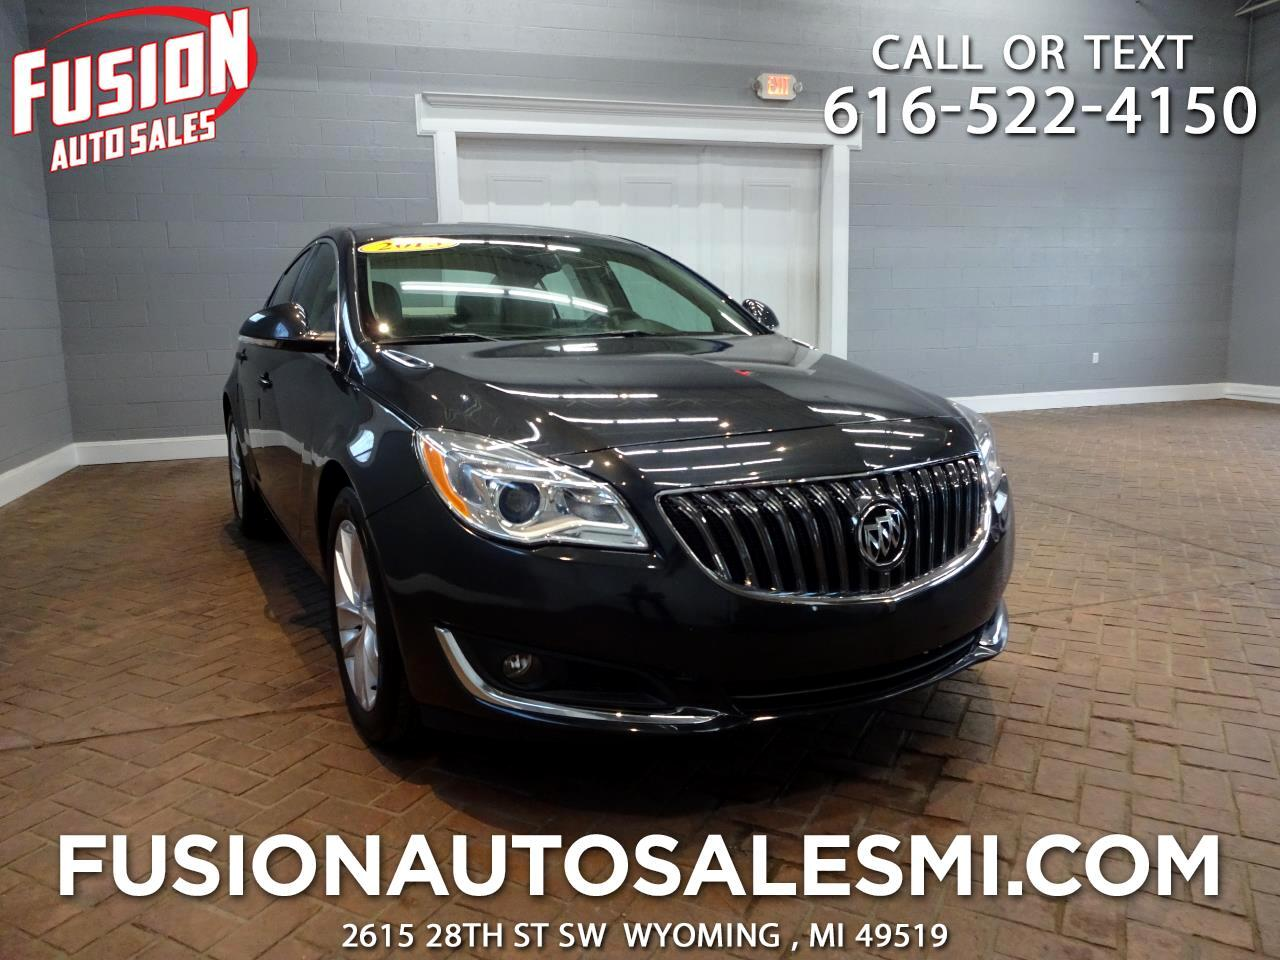 2015 Buick Regal 4dr Sdn FWD